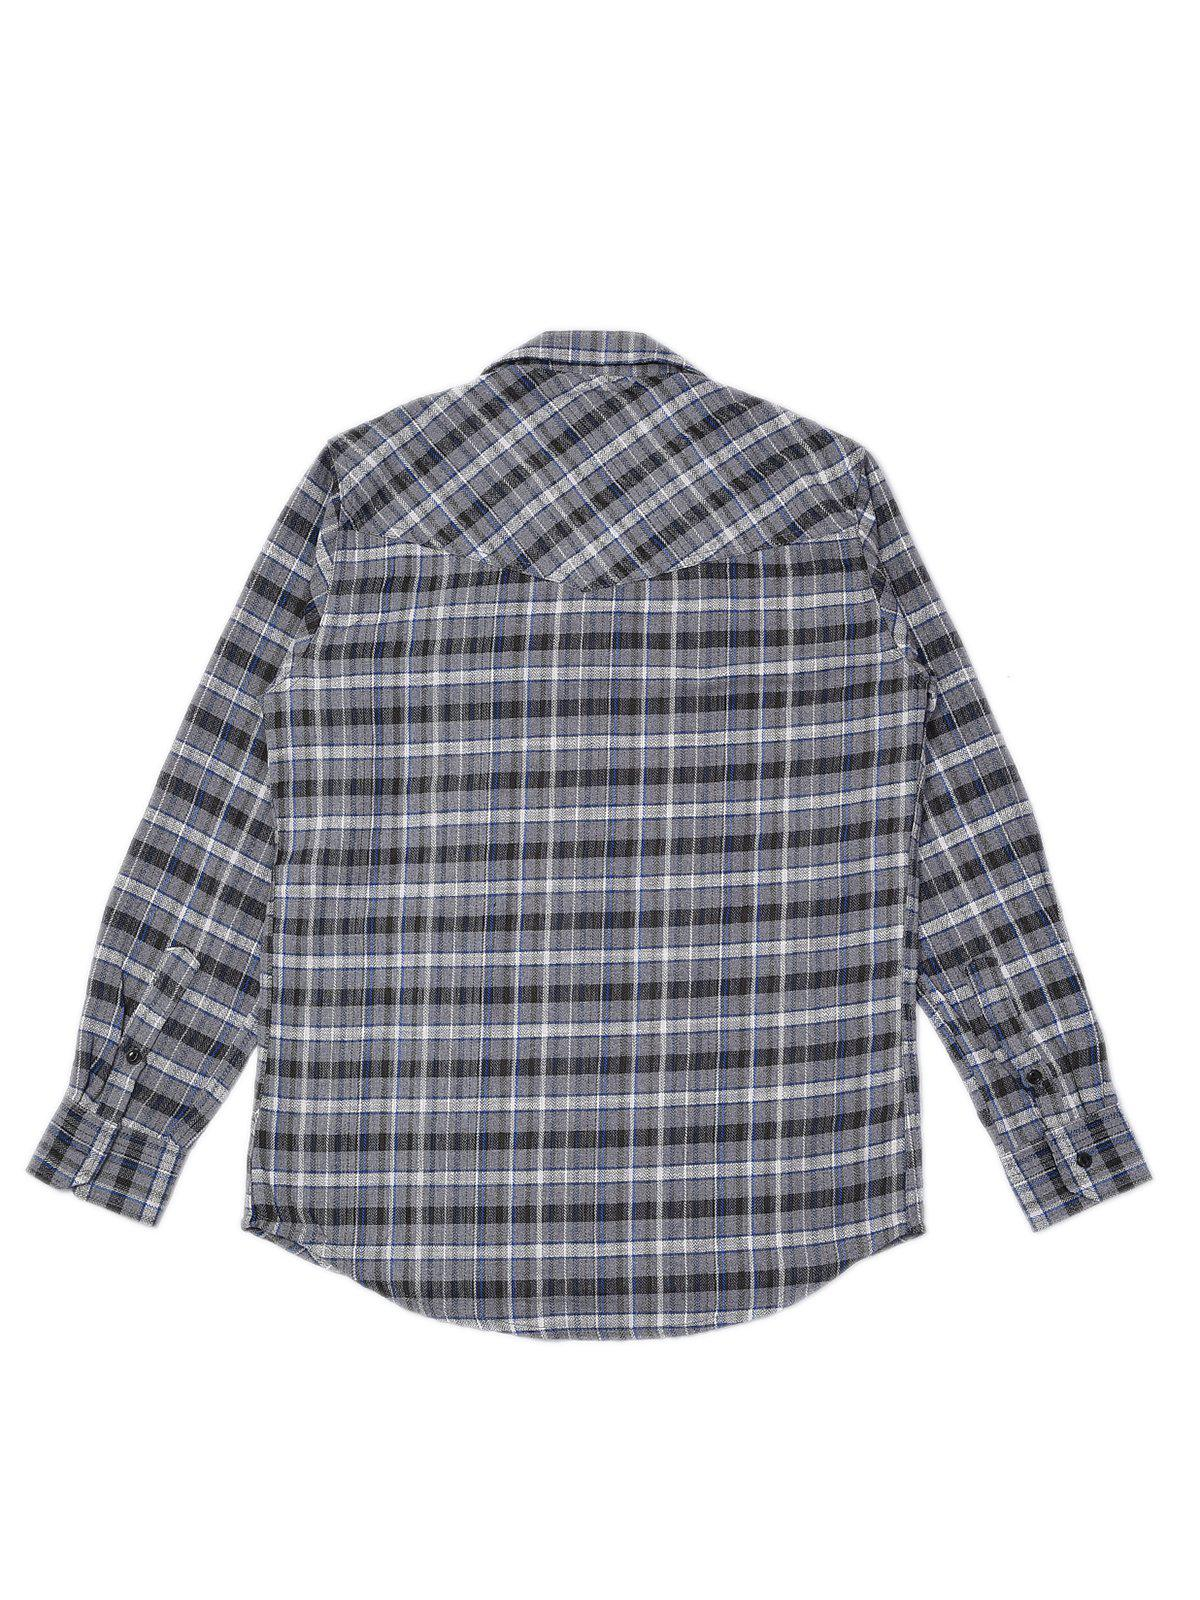 Jackhammer Liam Plaid Shirt Grey - MORE by Morello Indonesia